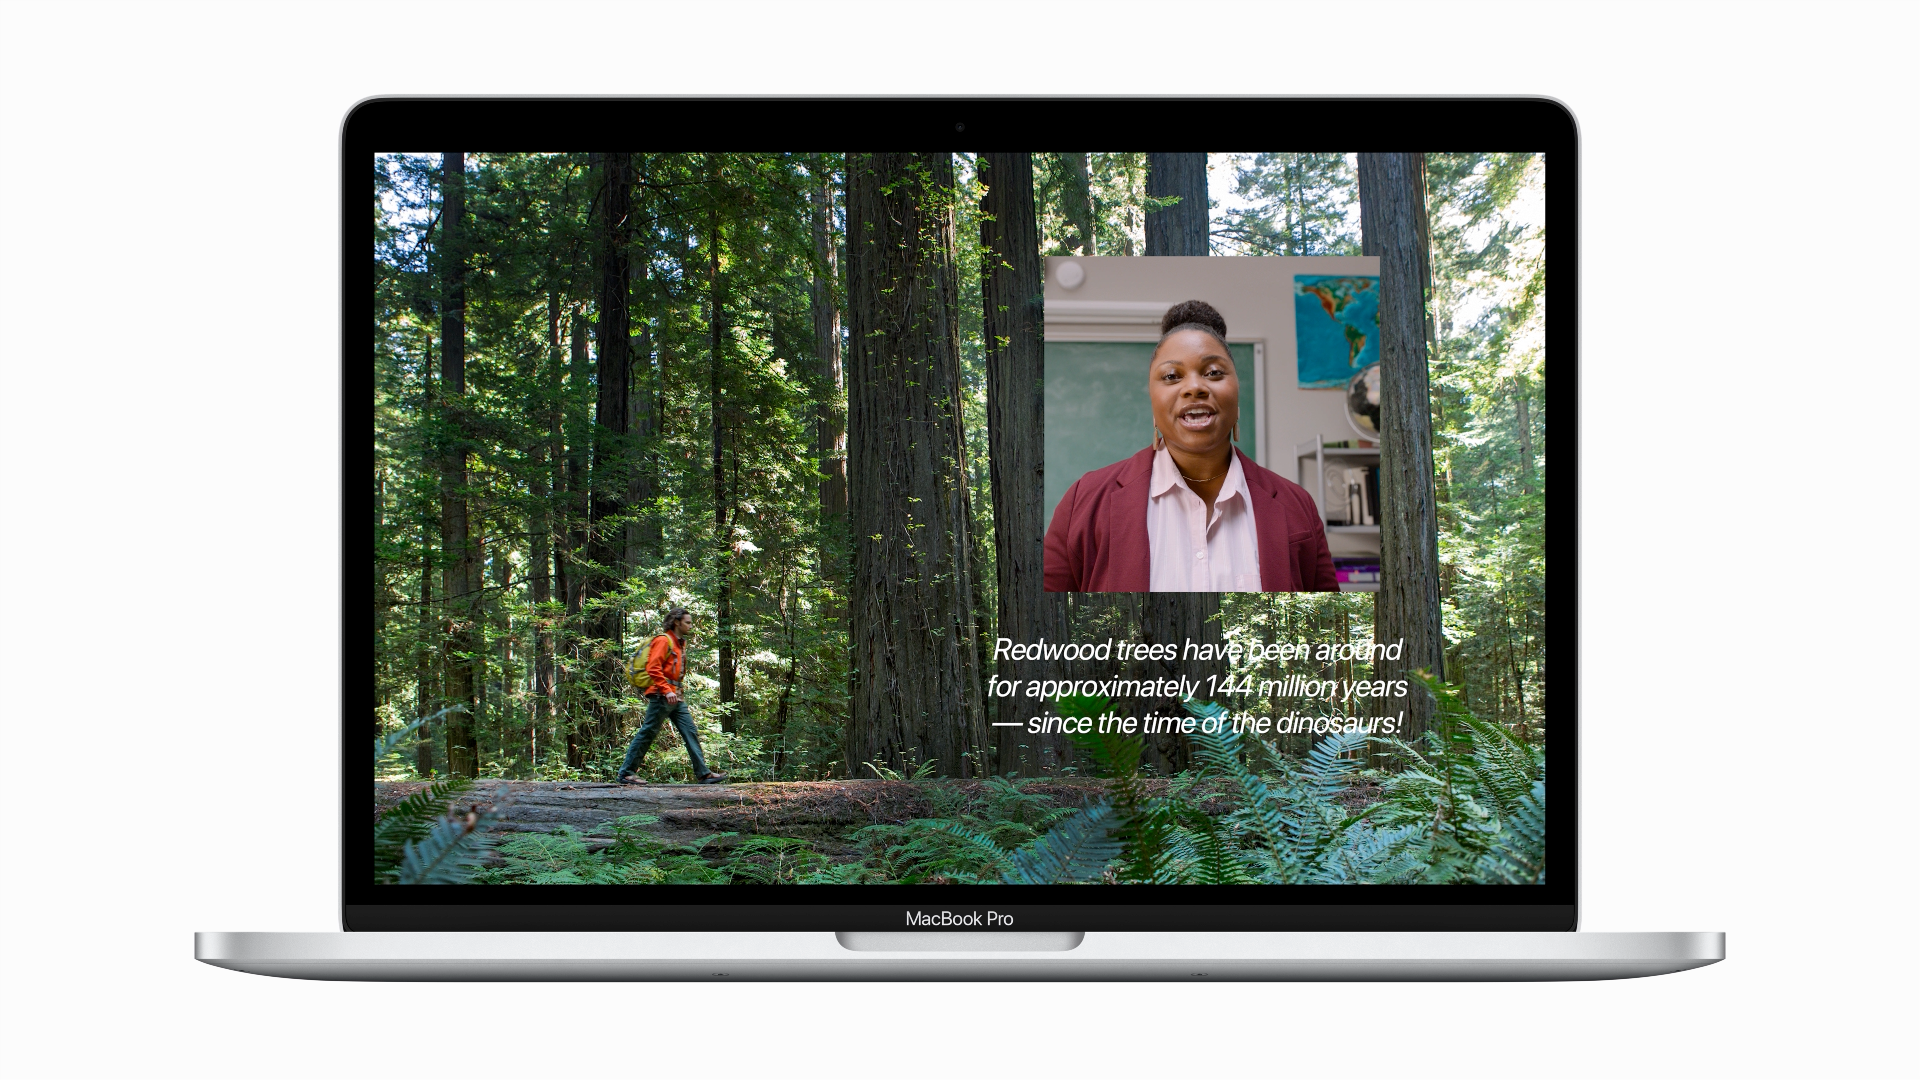 Keynote presentations can be combined with live video. Source: Apple